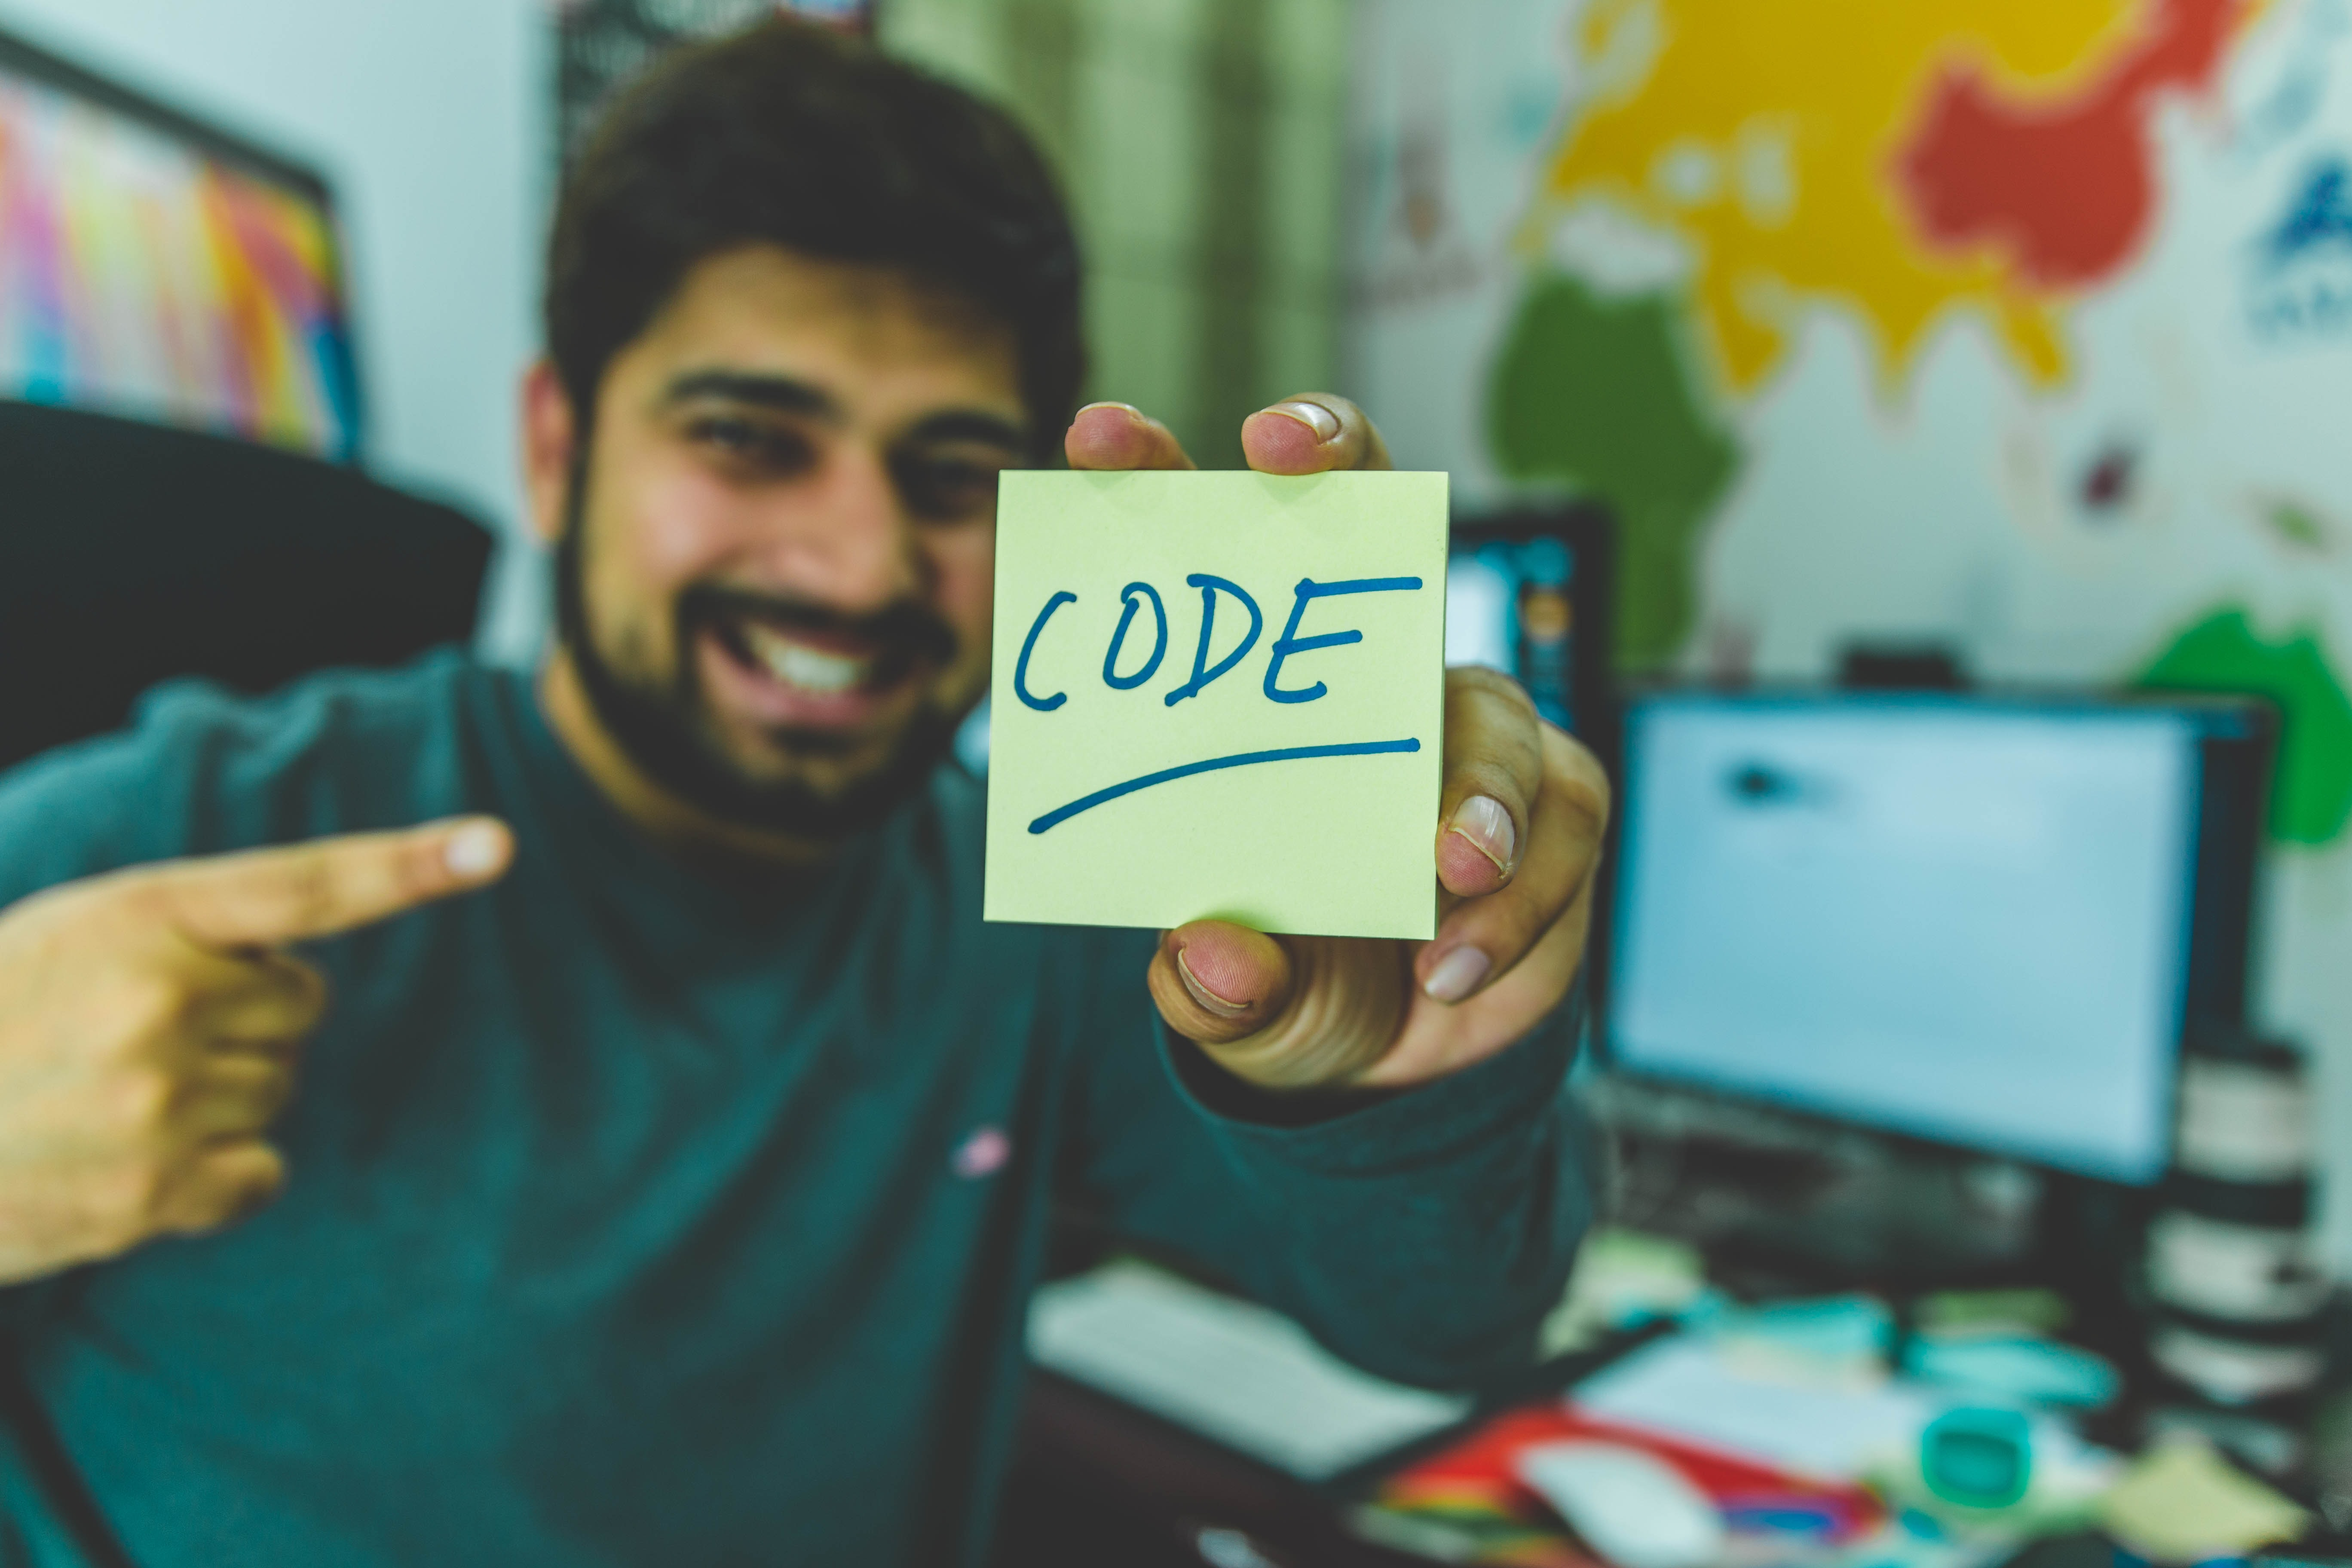 smiling man showing sticky note with code illustration